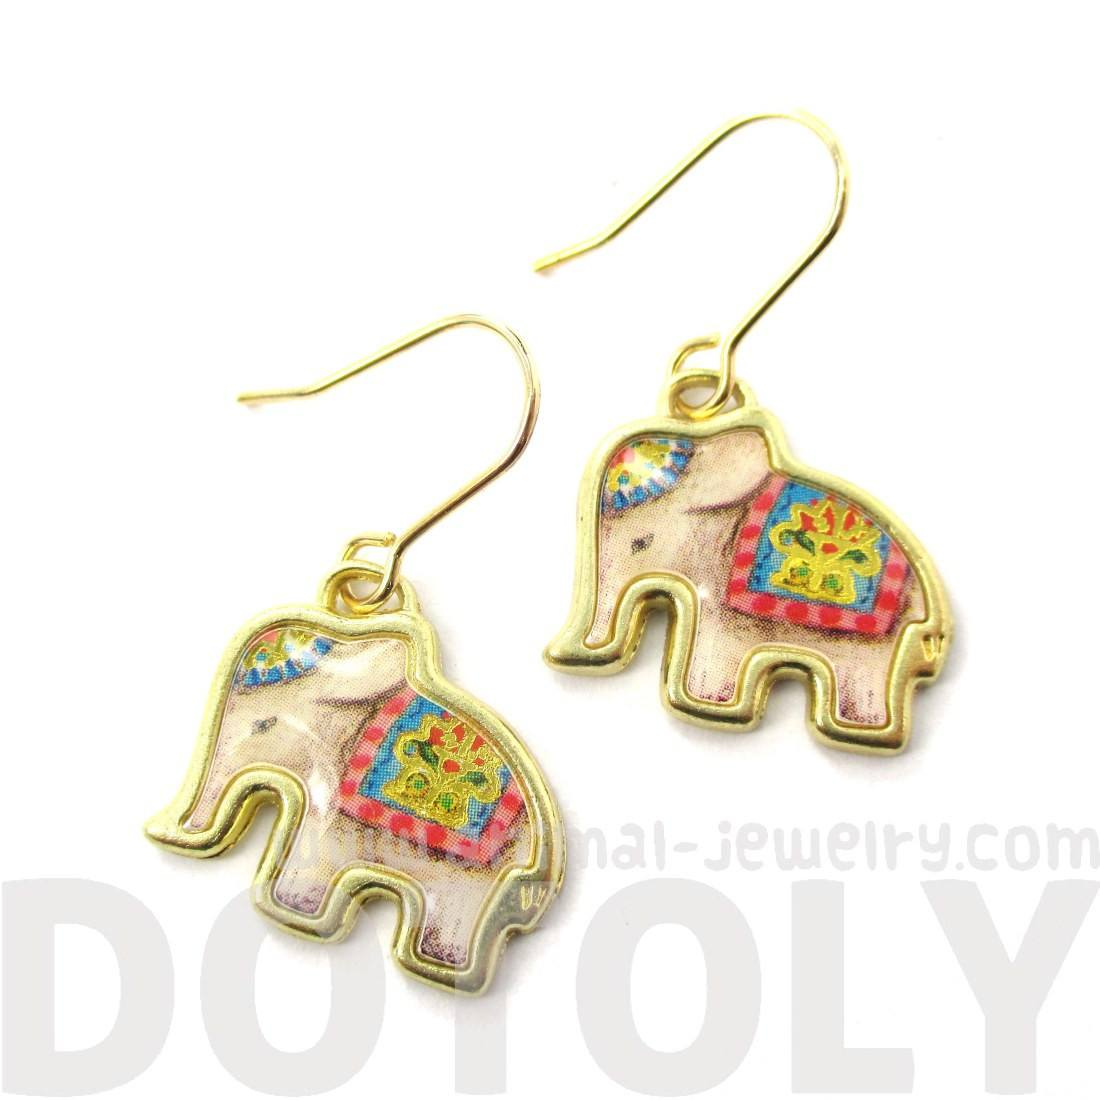 Colorful Circus Elephant Shpaed Animal Dangle Earrings